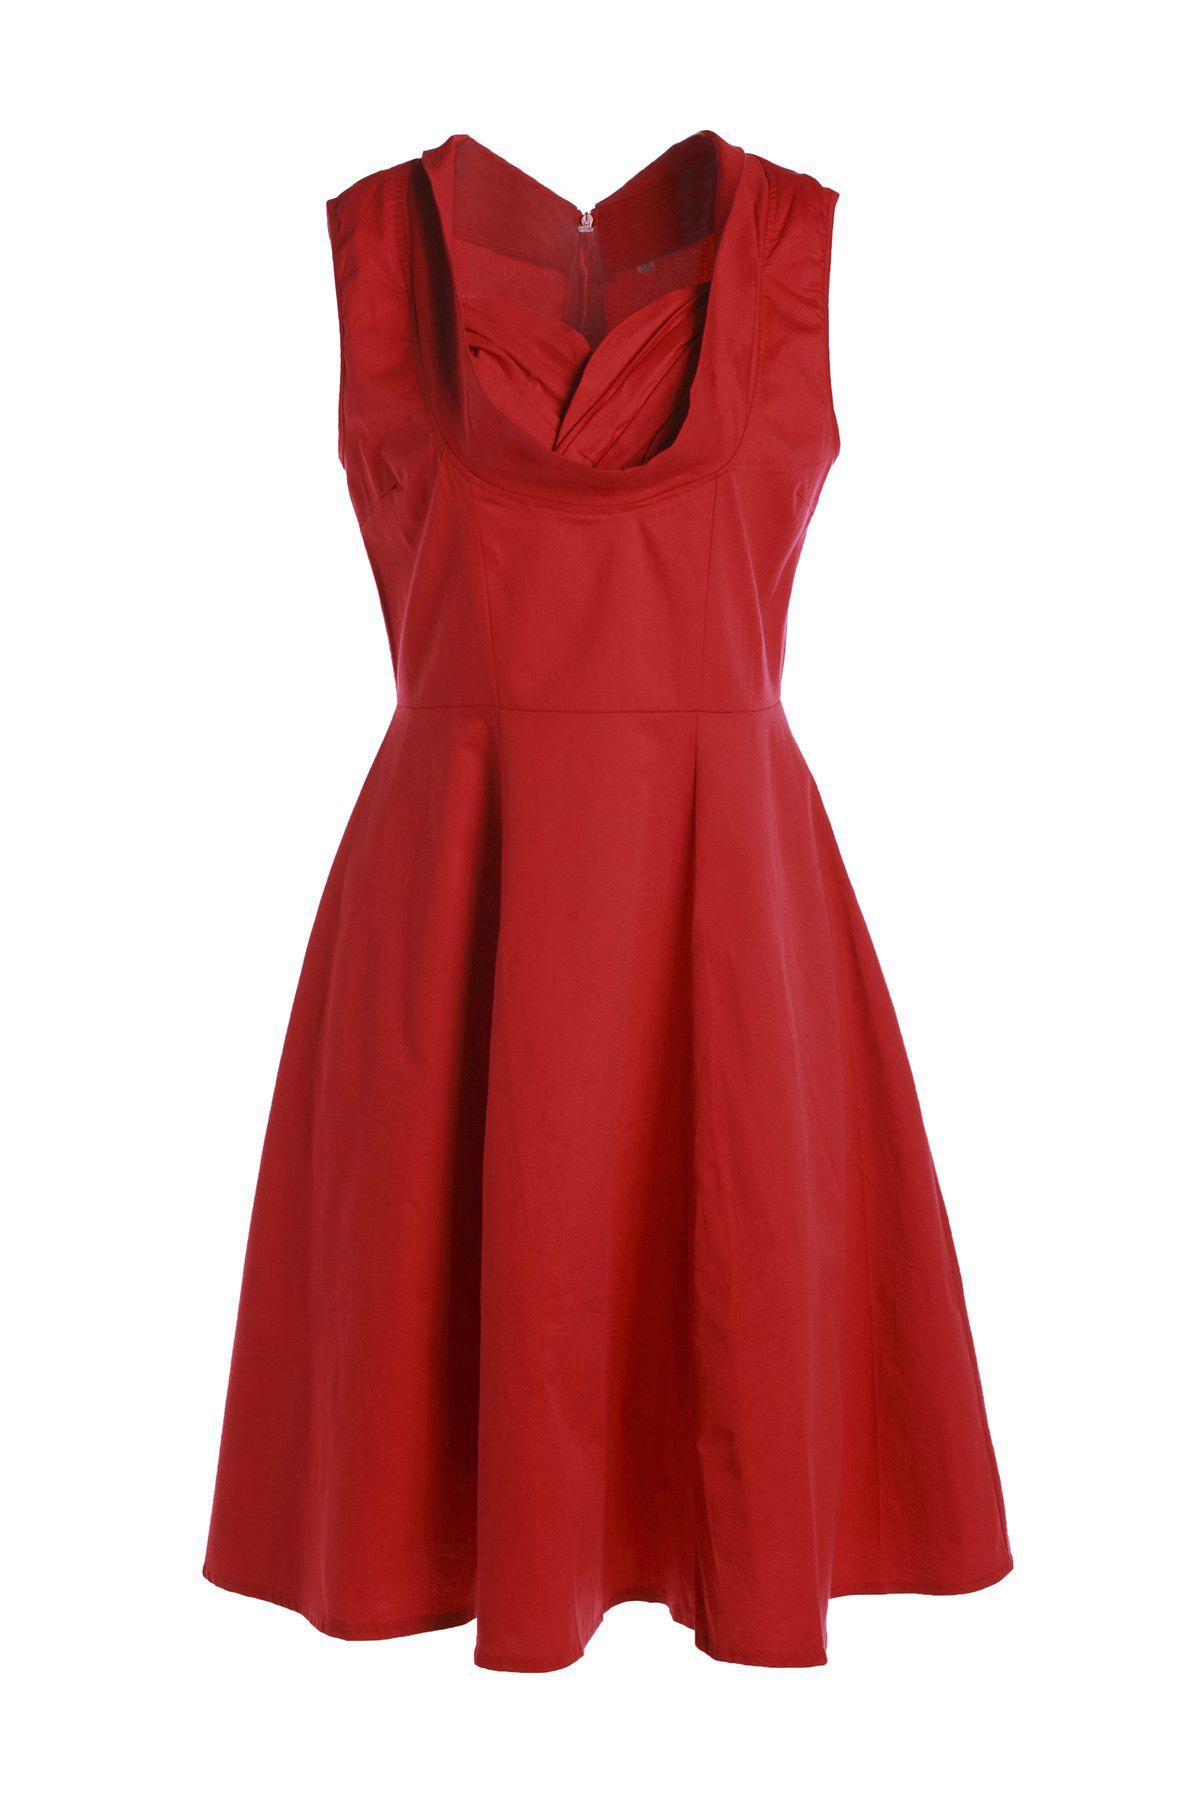 Vintage Sweetheart Neck Sleeveless Ball Gown Solid Color Women's Dress - RED L